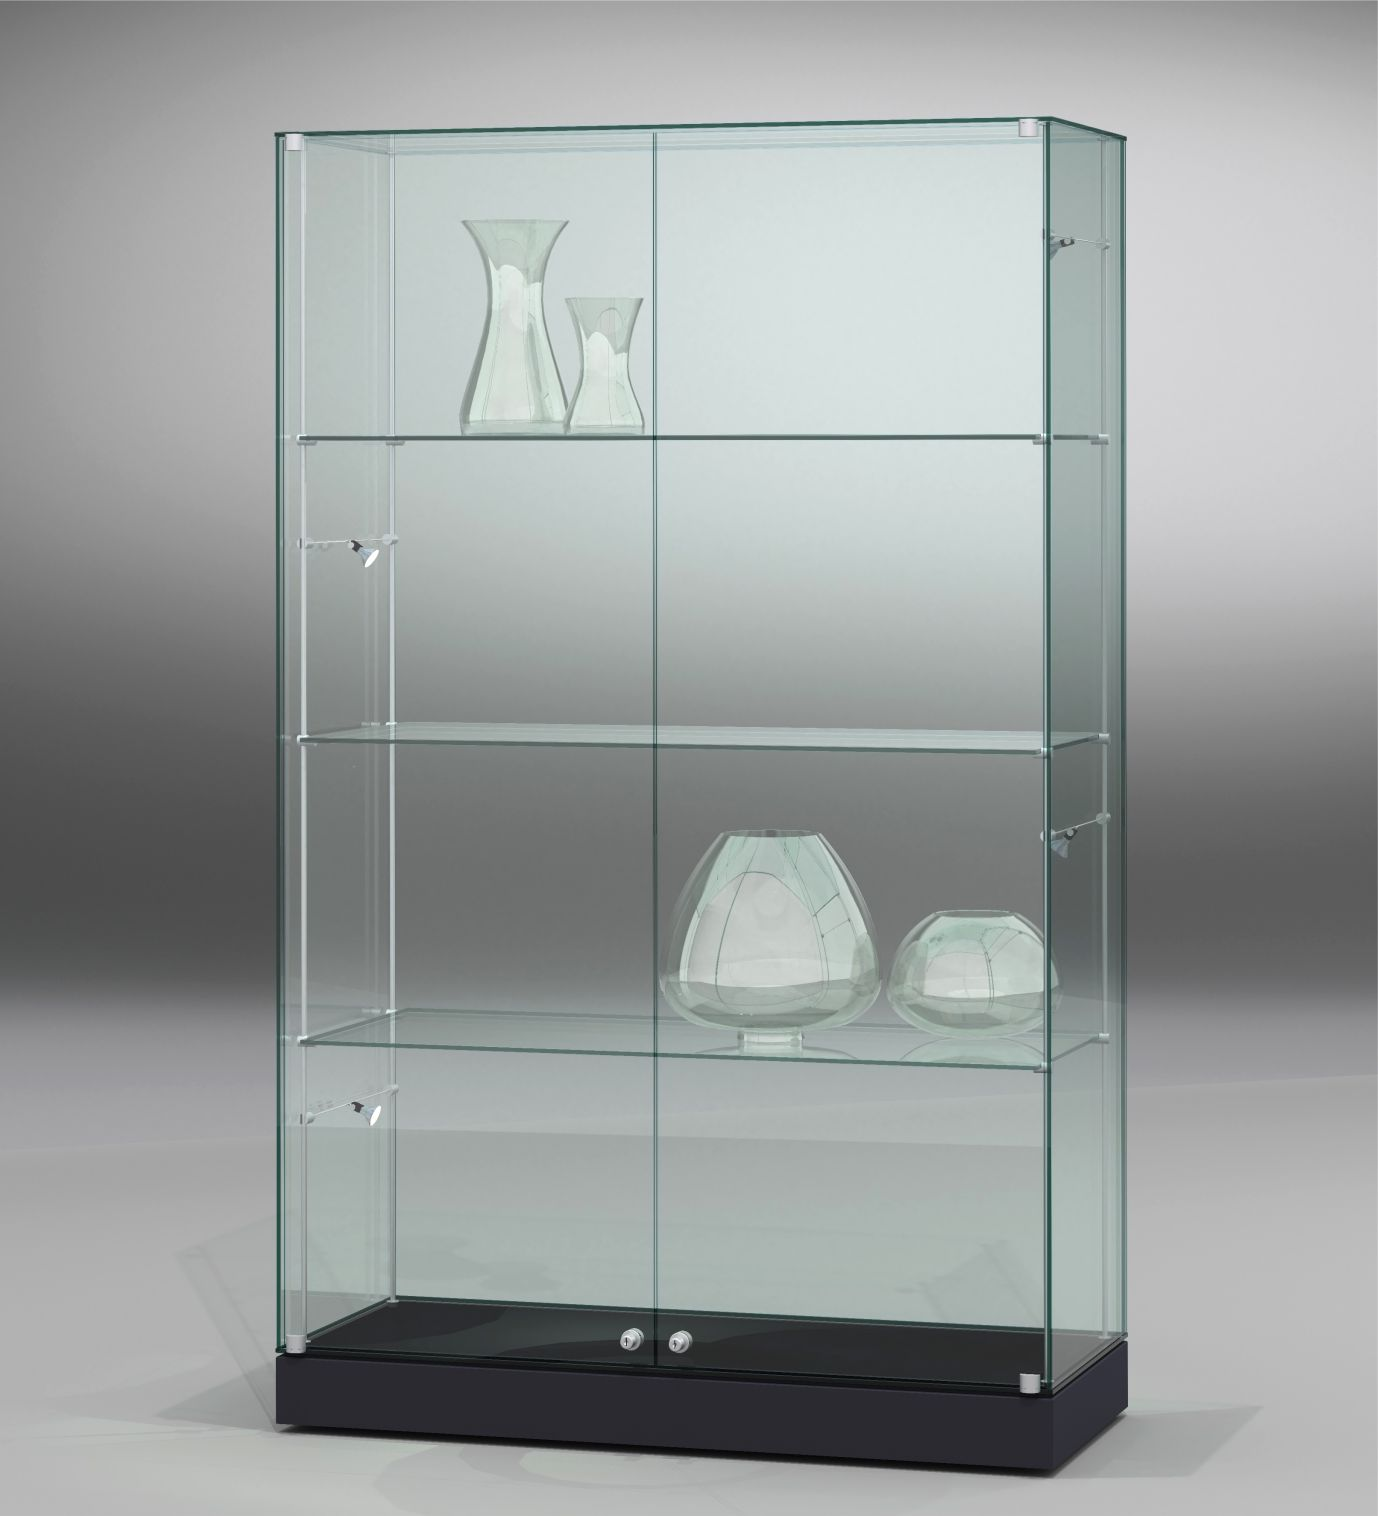 FANUM cabinet showcases